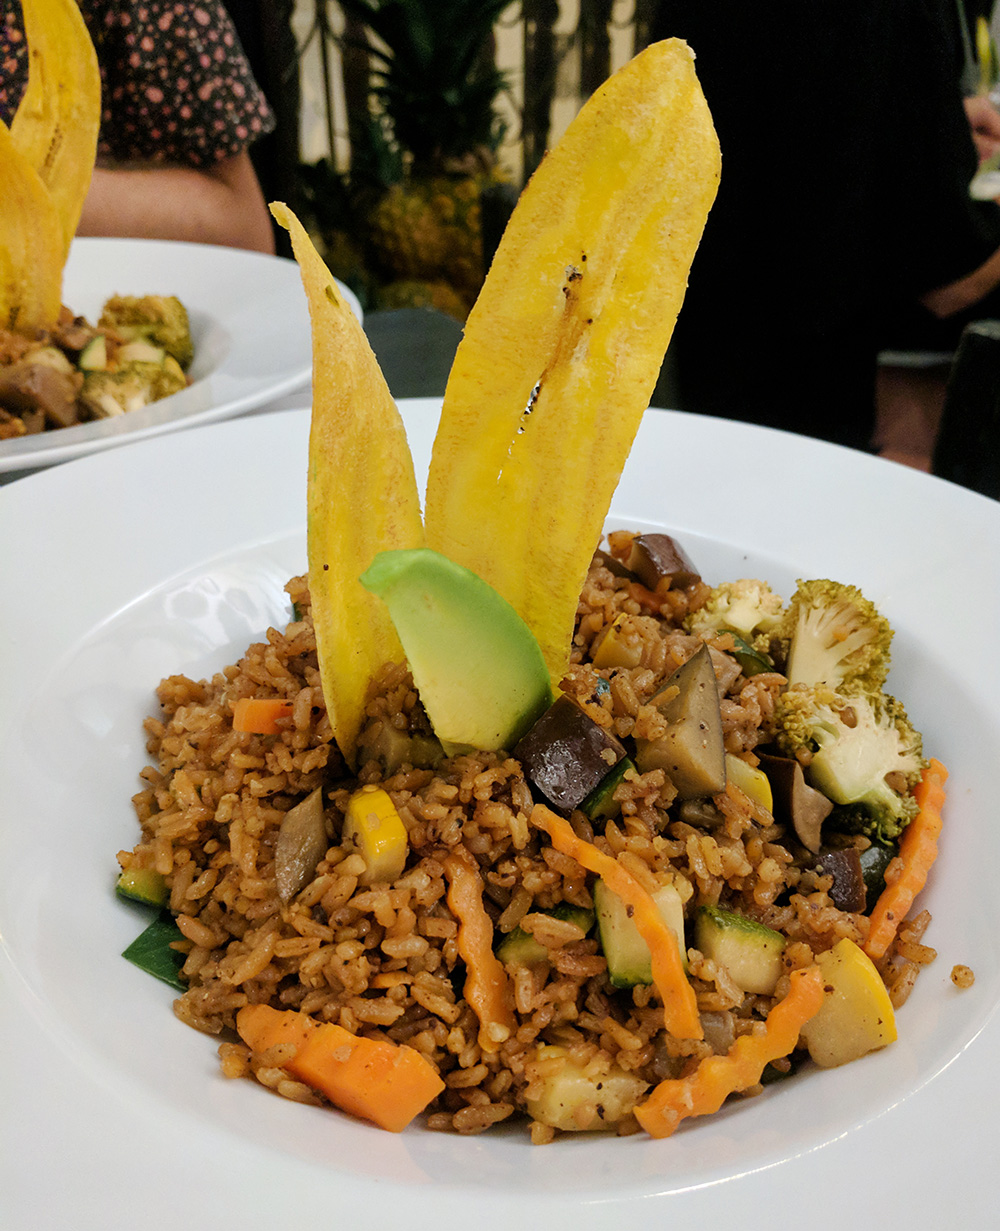 Food in Cartagena, Colombia